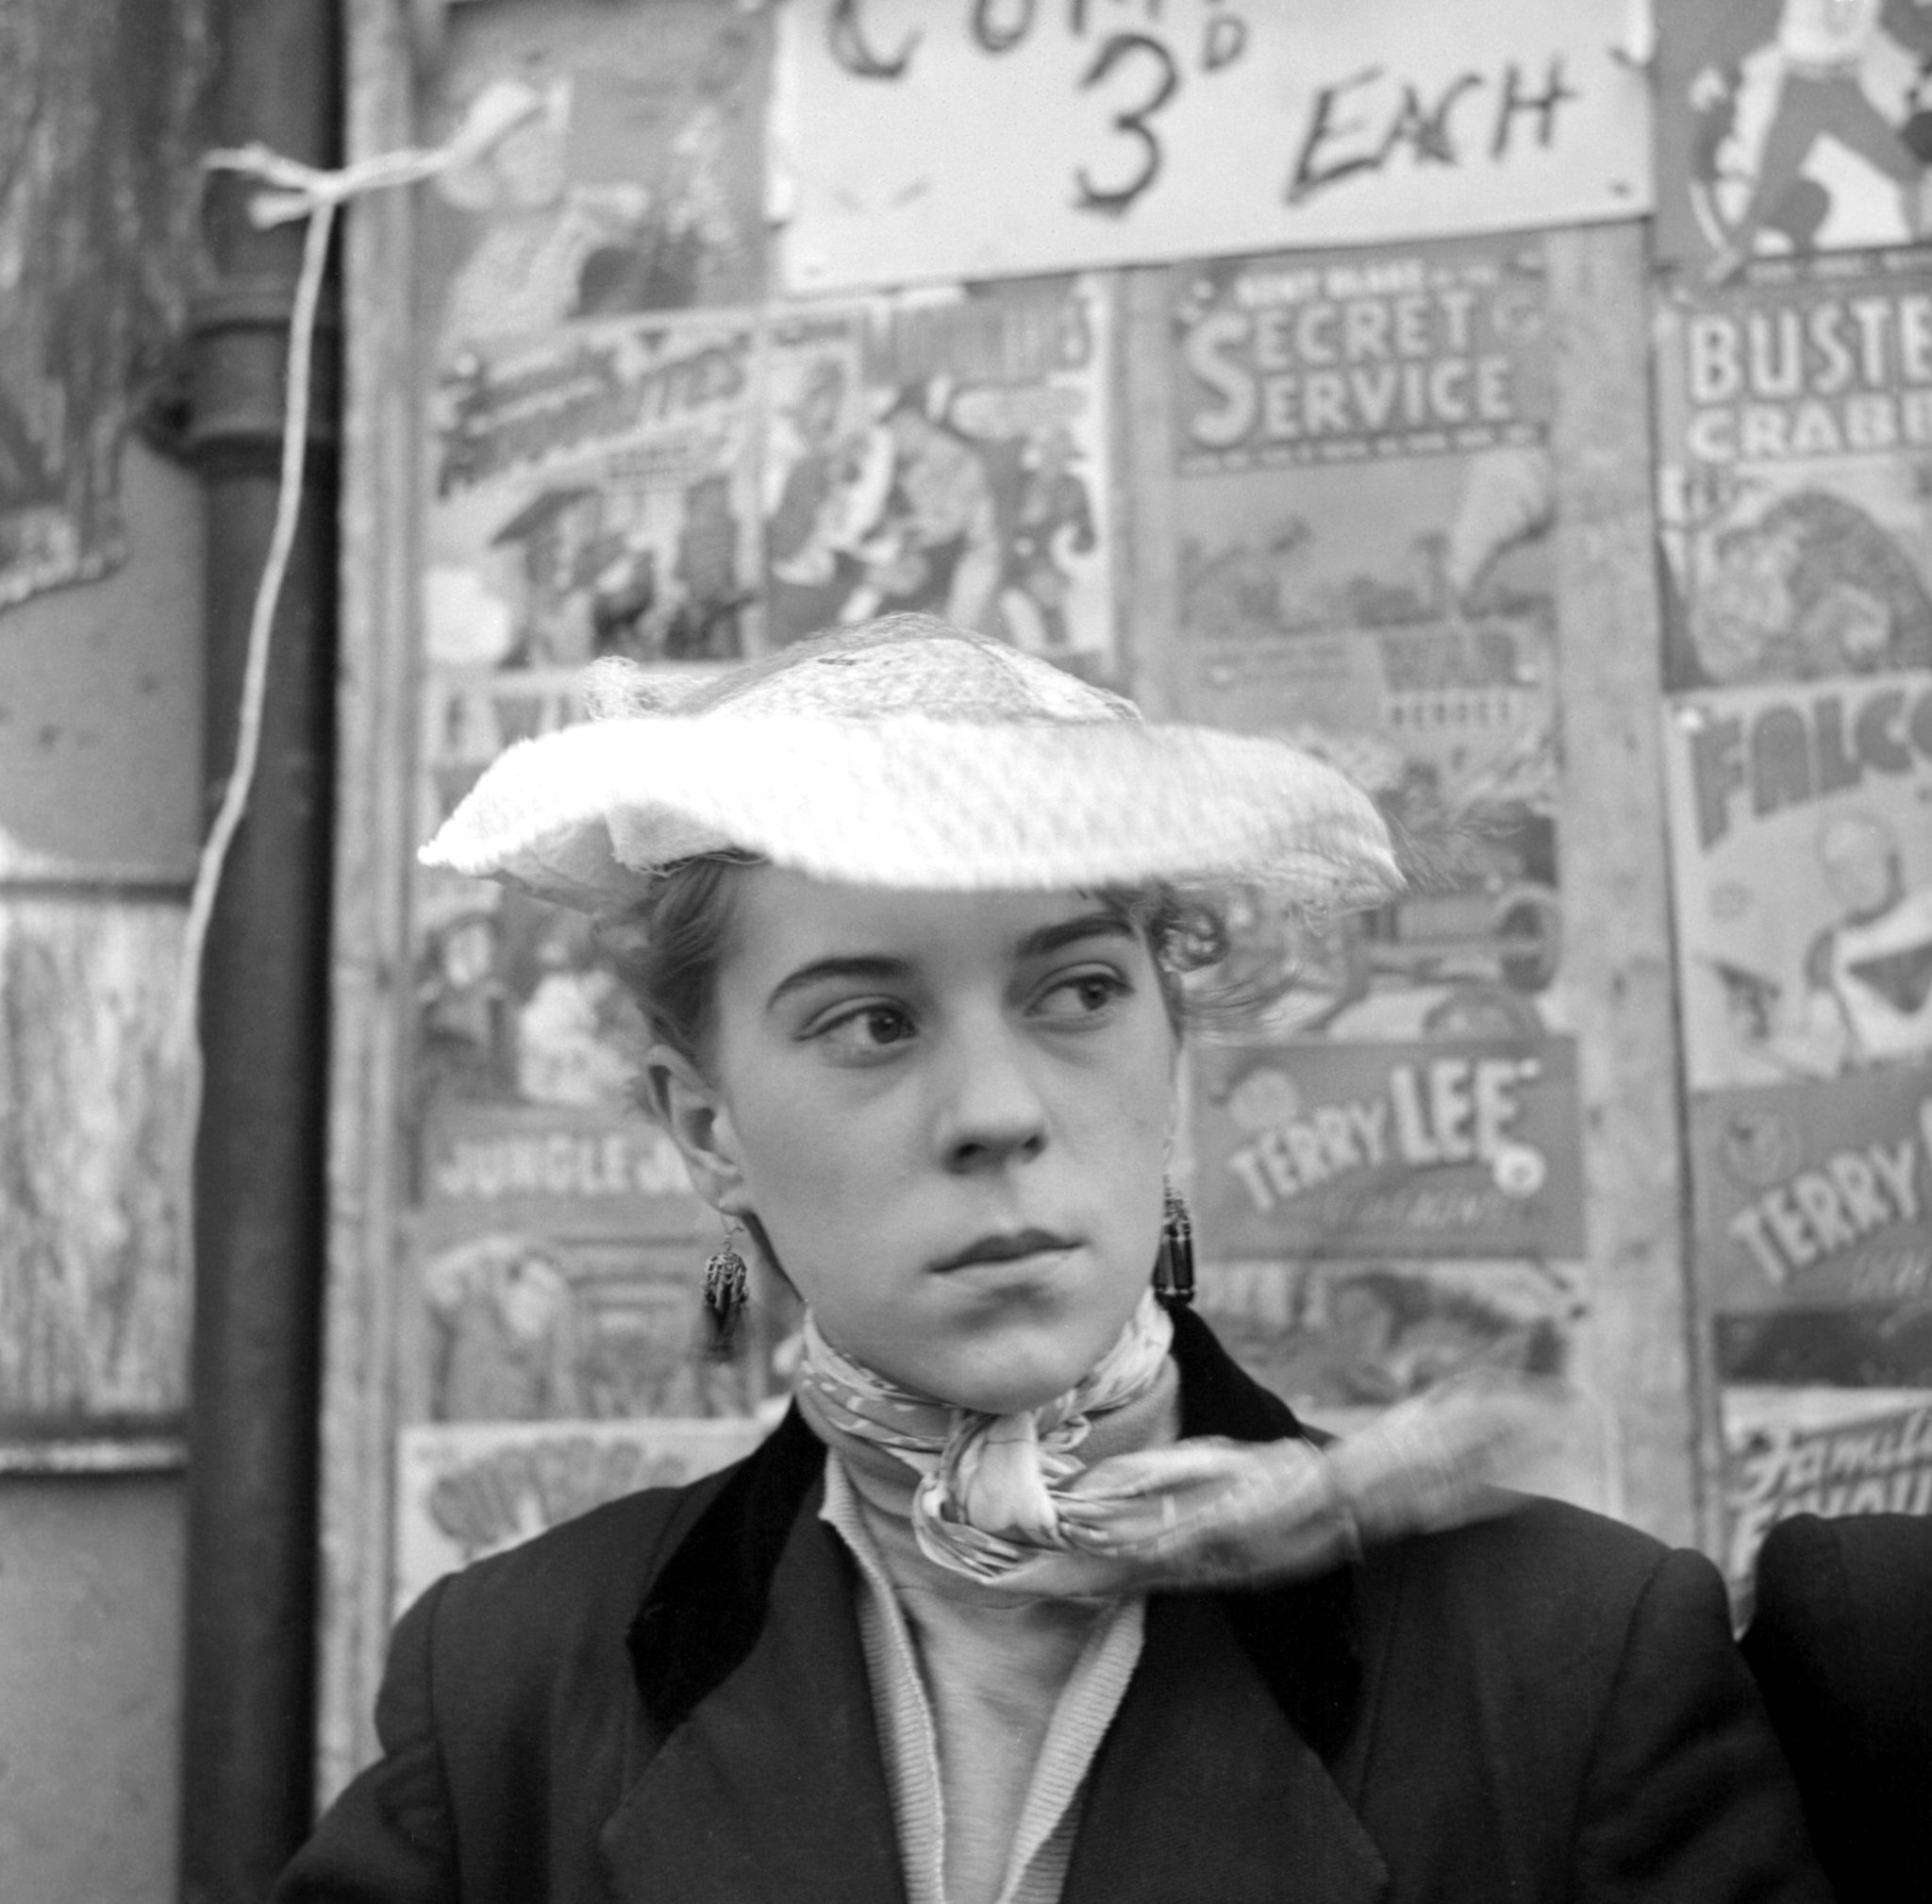 A photo of Teddy Girl Iris Thornton taken in Canning Town in 1955 by Ken Russell, released to publicise an exhibition of the late film director's work at Oxford's North Wall Art Centre in February 2017. Image © Ken Russell/Topfoto.co.uk